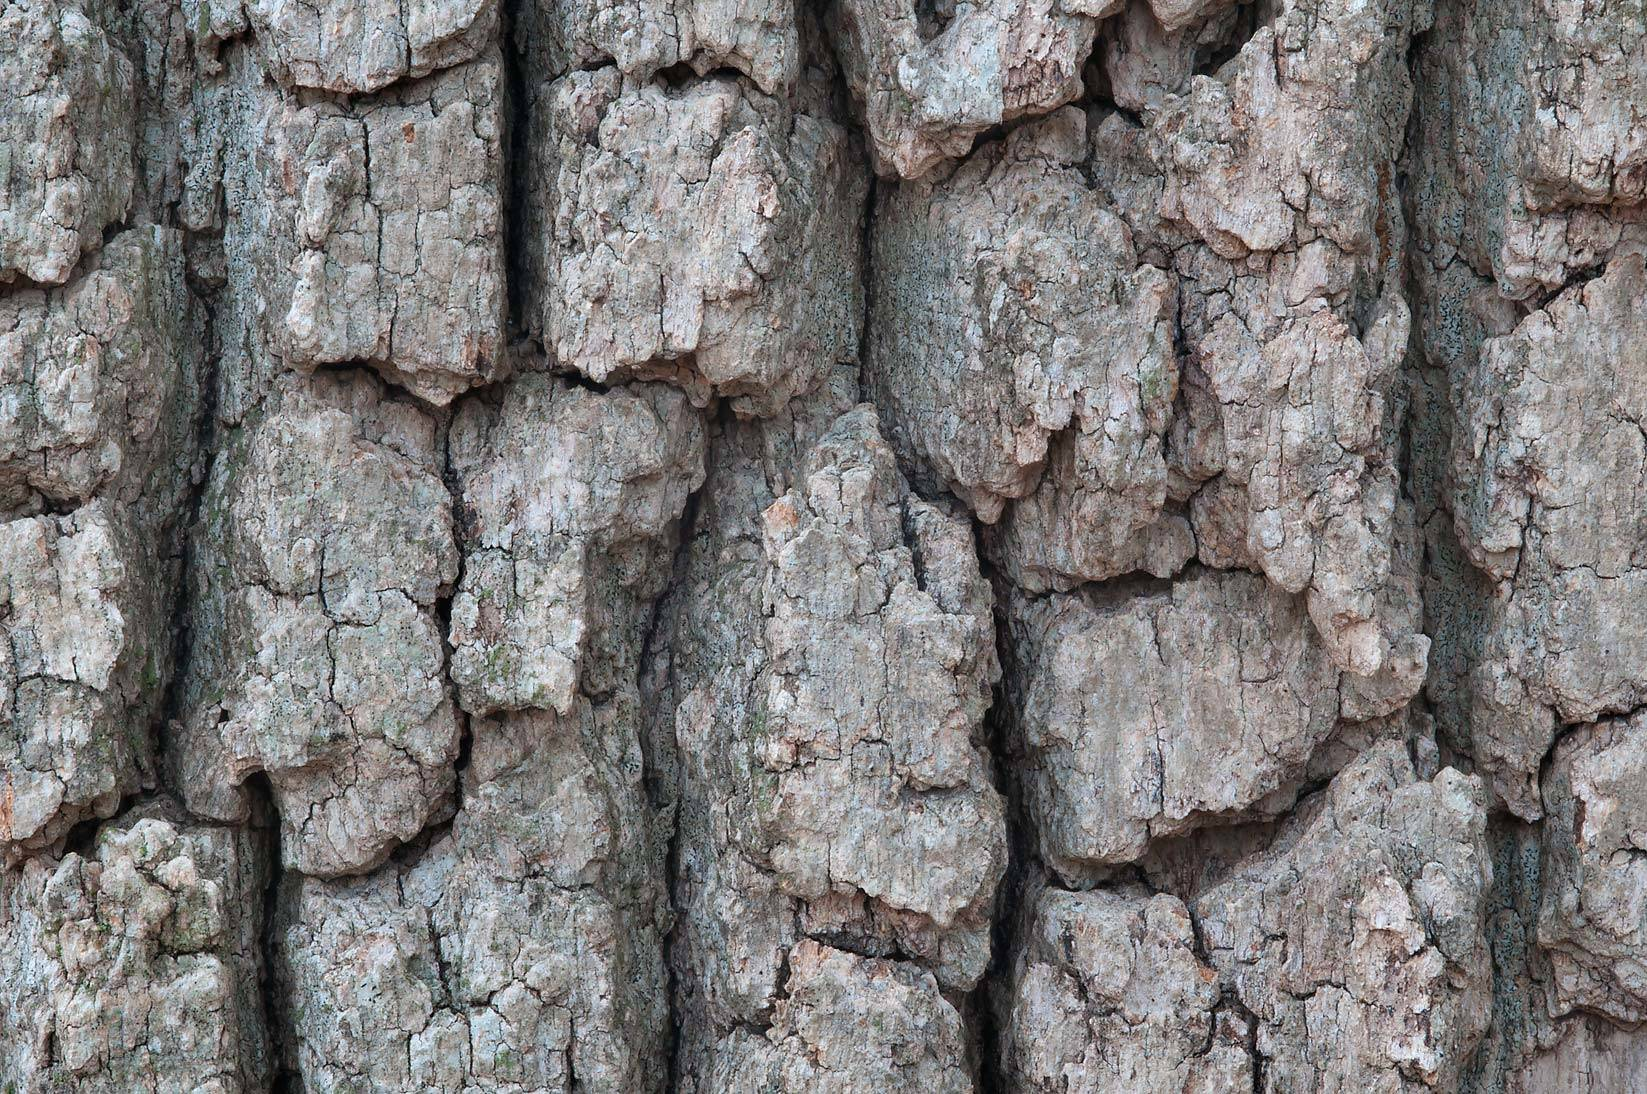 Benefits and uses of white oak bark